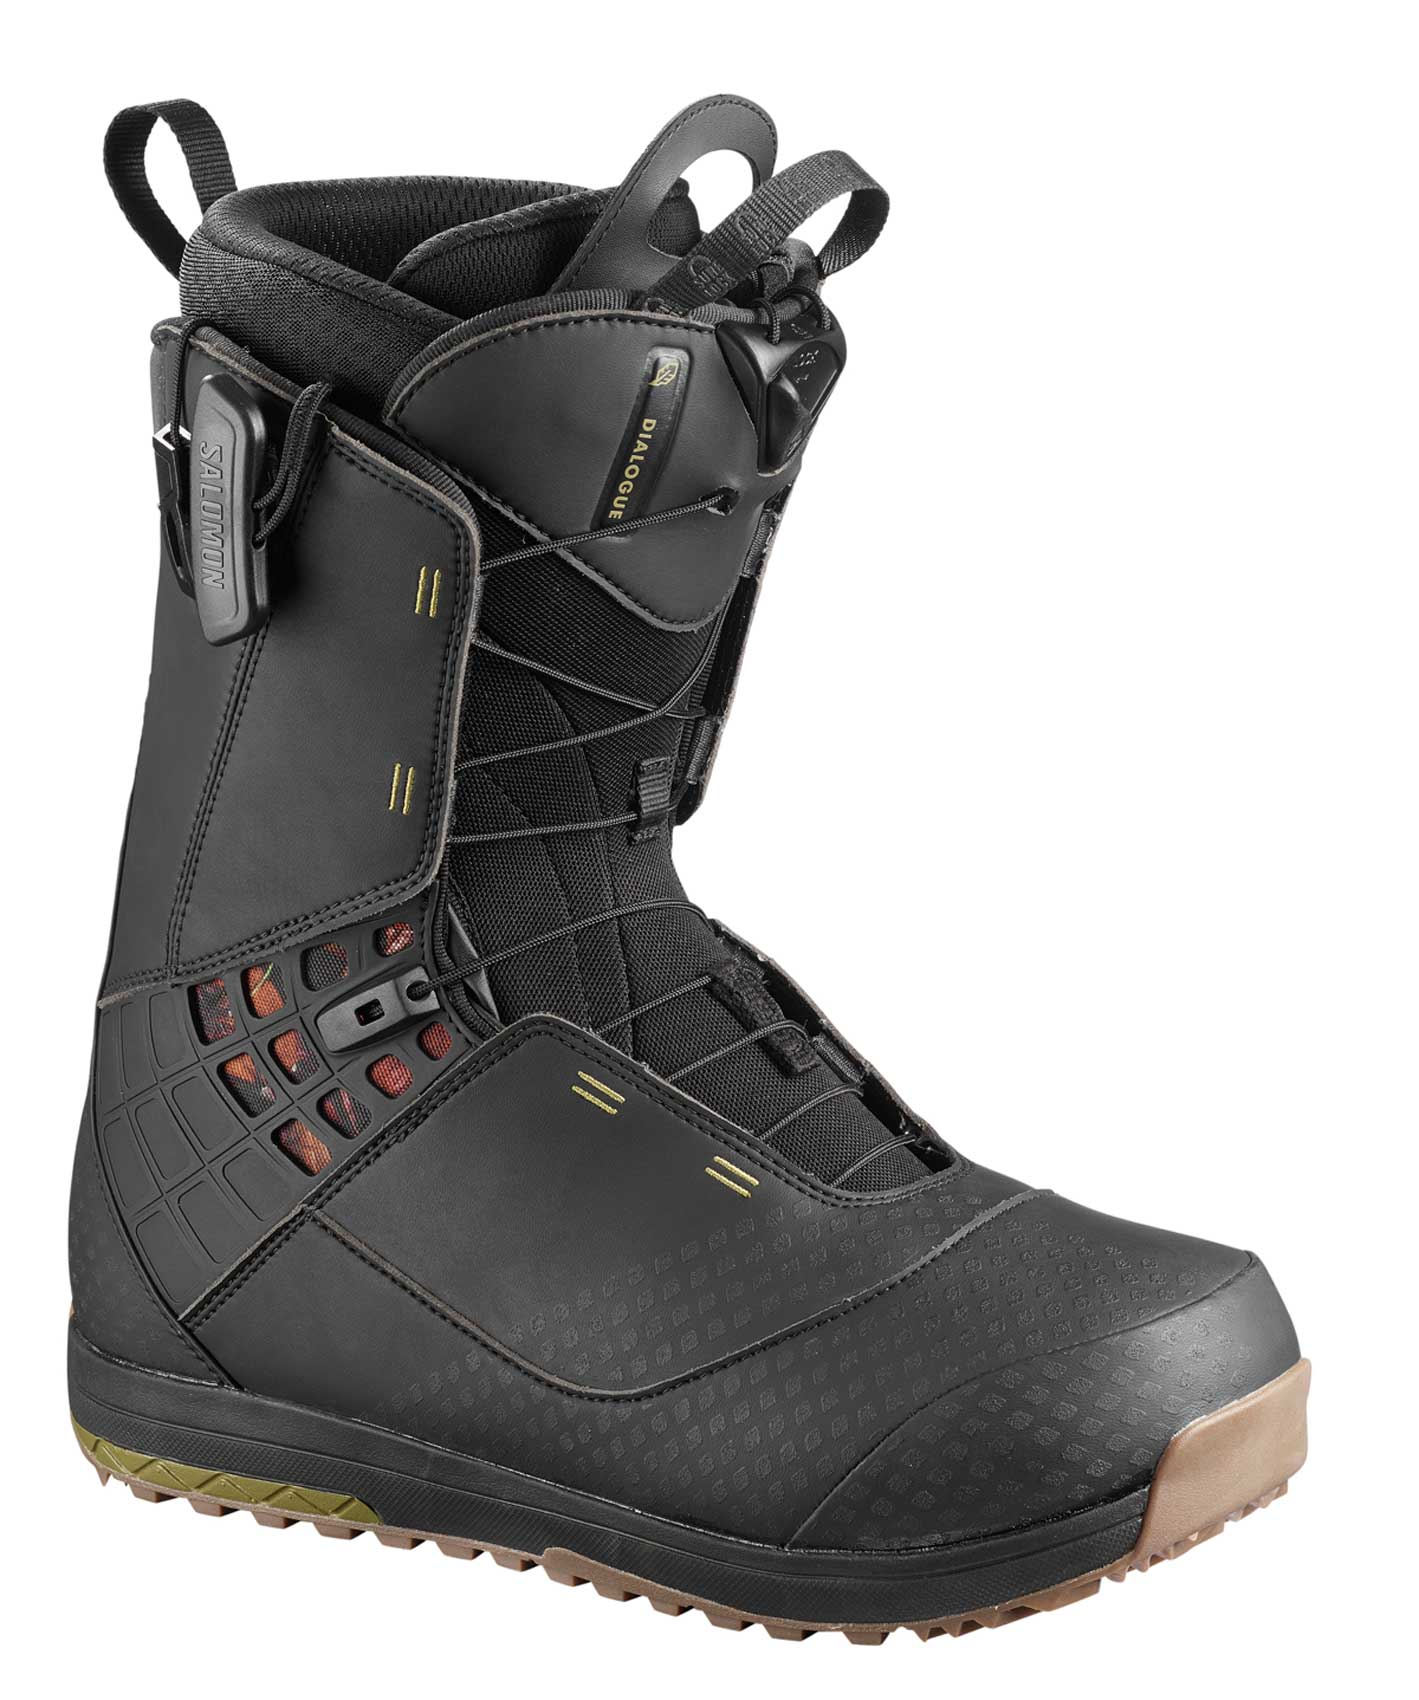 Salomon Dialogue Snowboard Boots UK 11 review